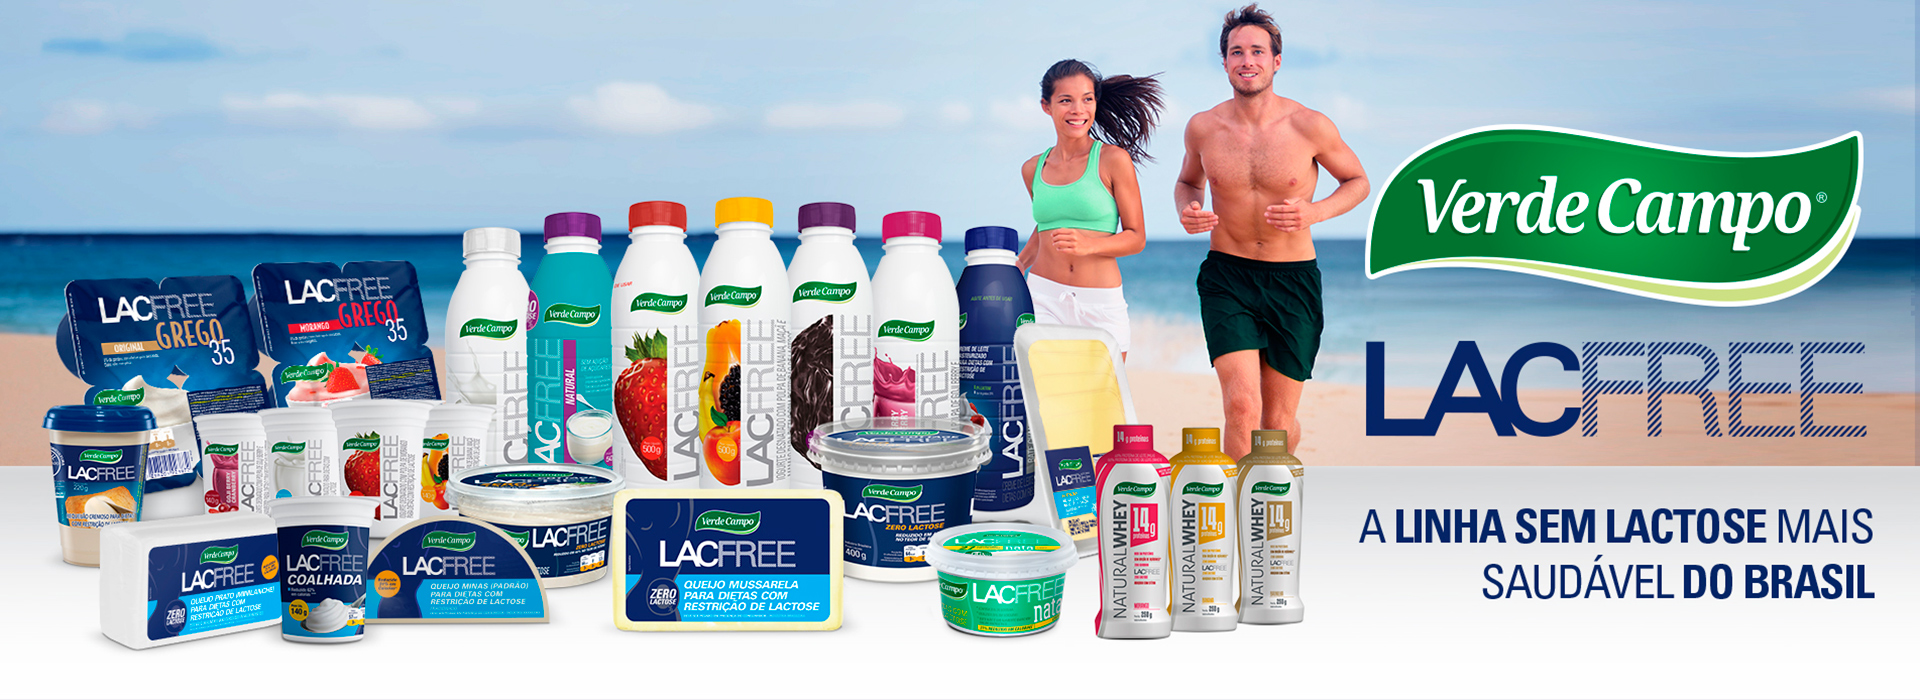 BANNER-SITE-LINHA-LACFREE